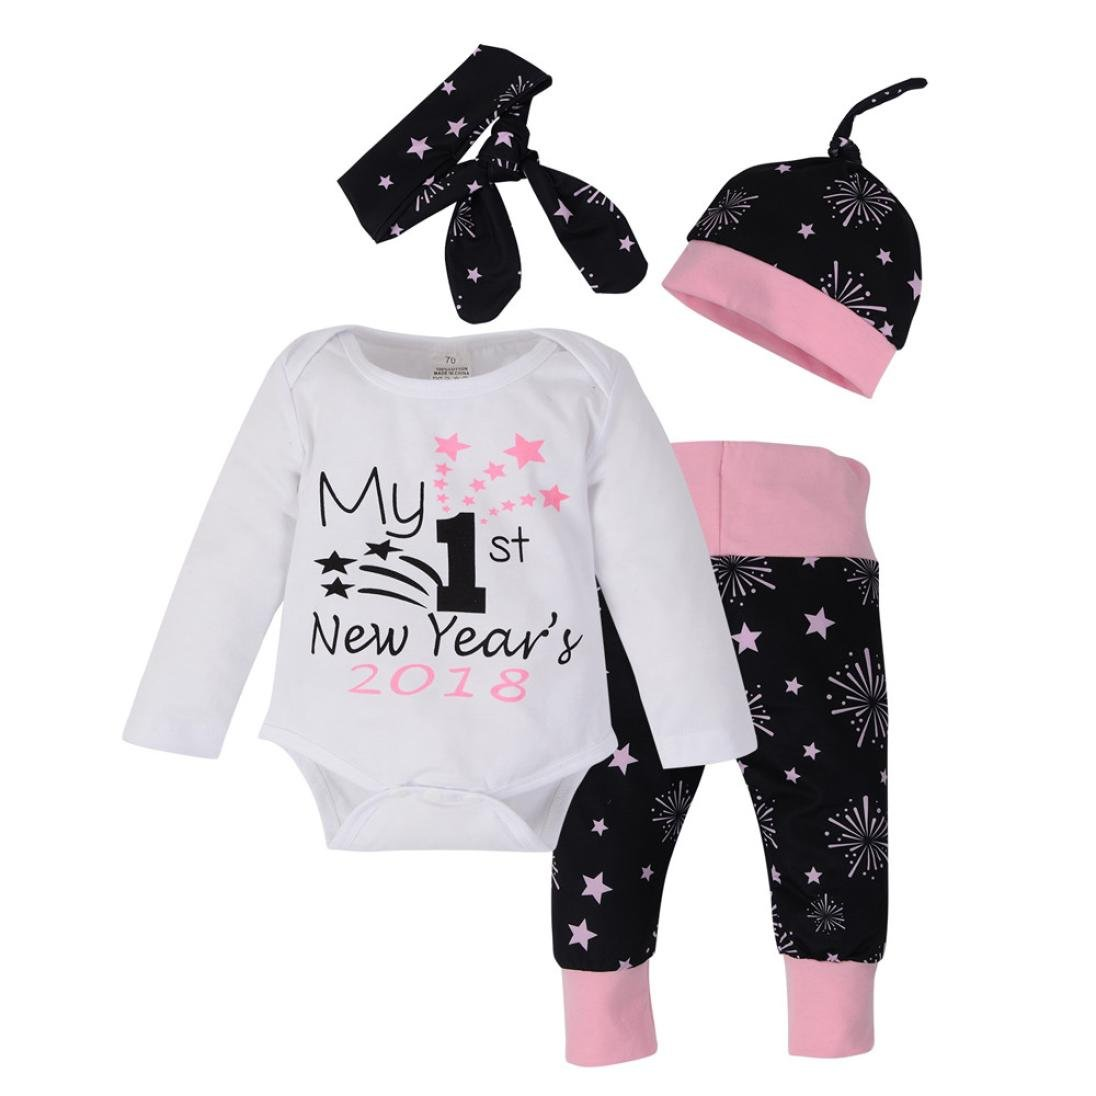 4PC Newborn Kids Christmas Clothes Baby Girls Boy My 1st New Year's Outfits Set